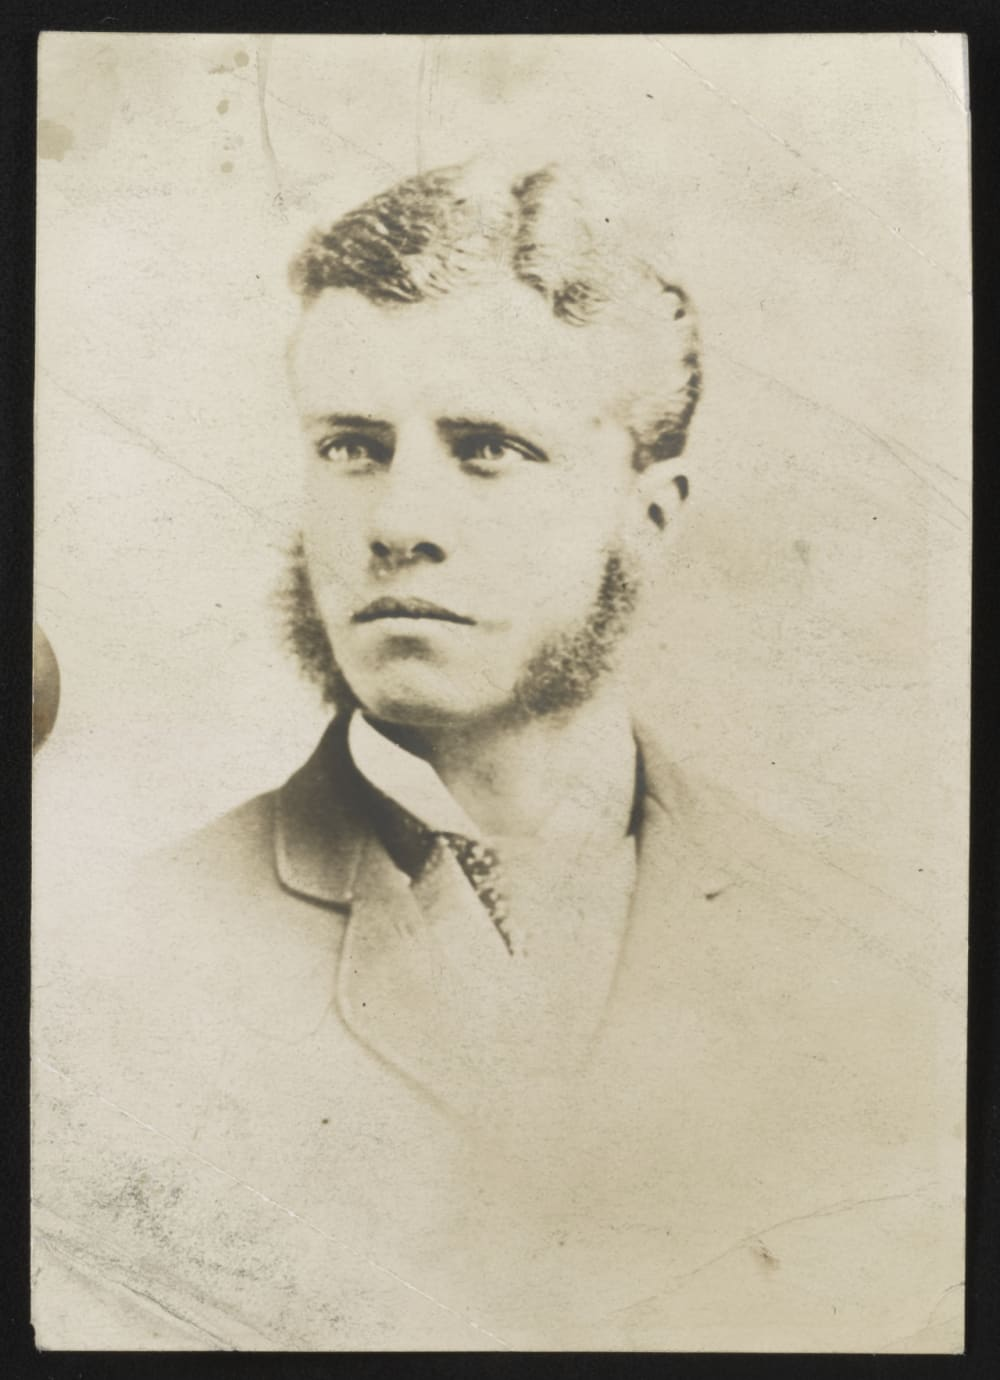 4. Theodore Roosevelt as a Harvard Freshman